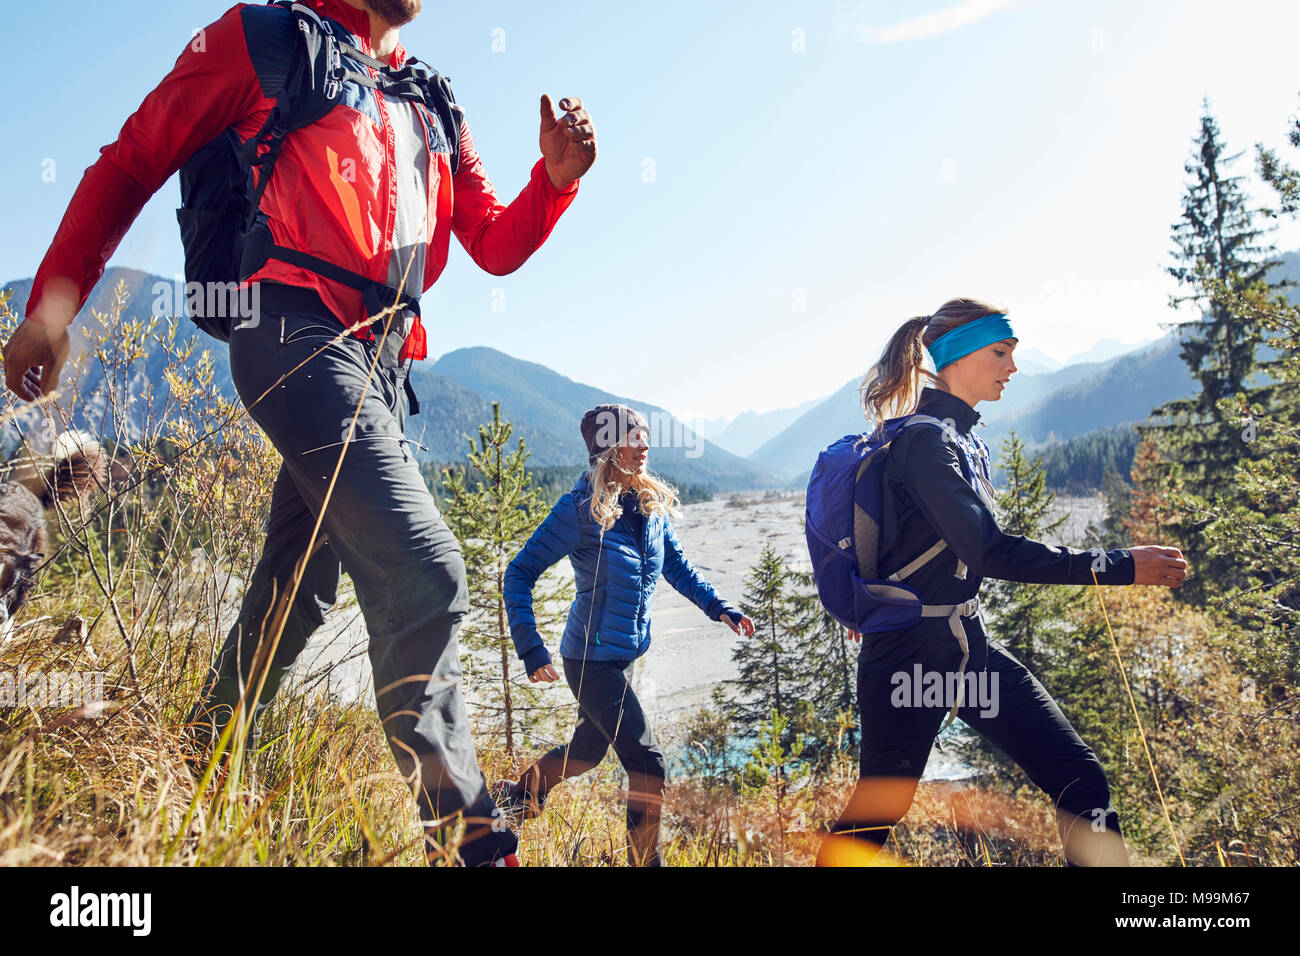 Germany, Bavaria, Karwendel, group of friends hiking in the mountains - Stock Image